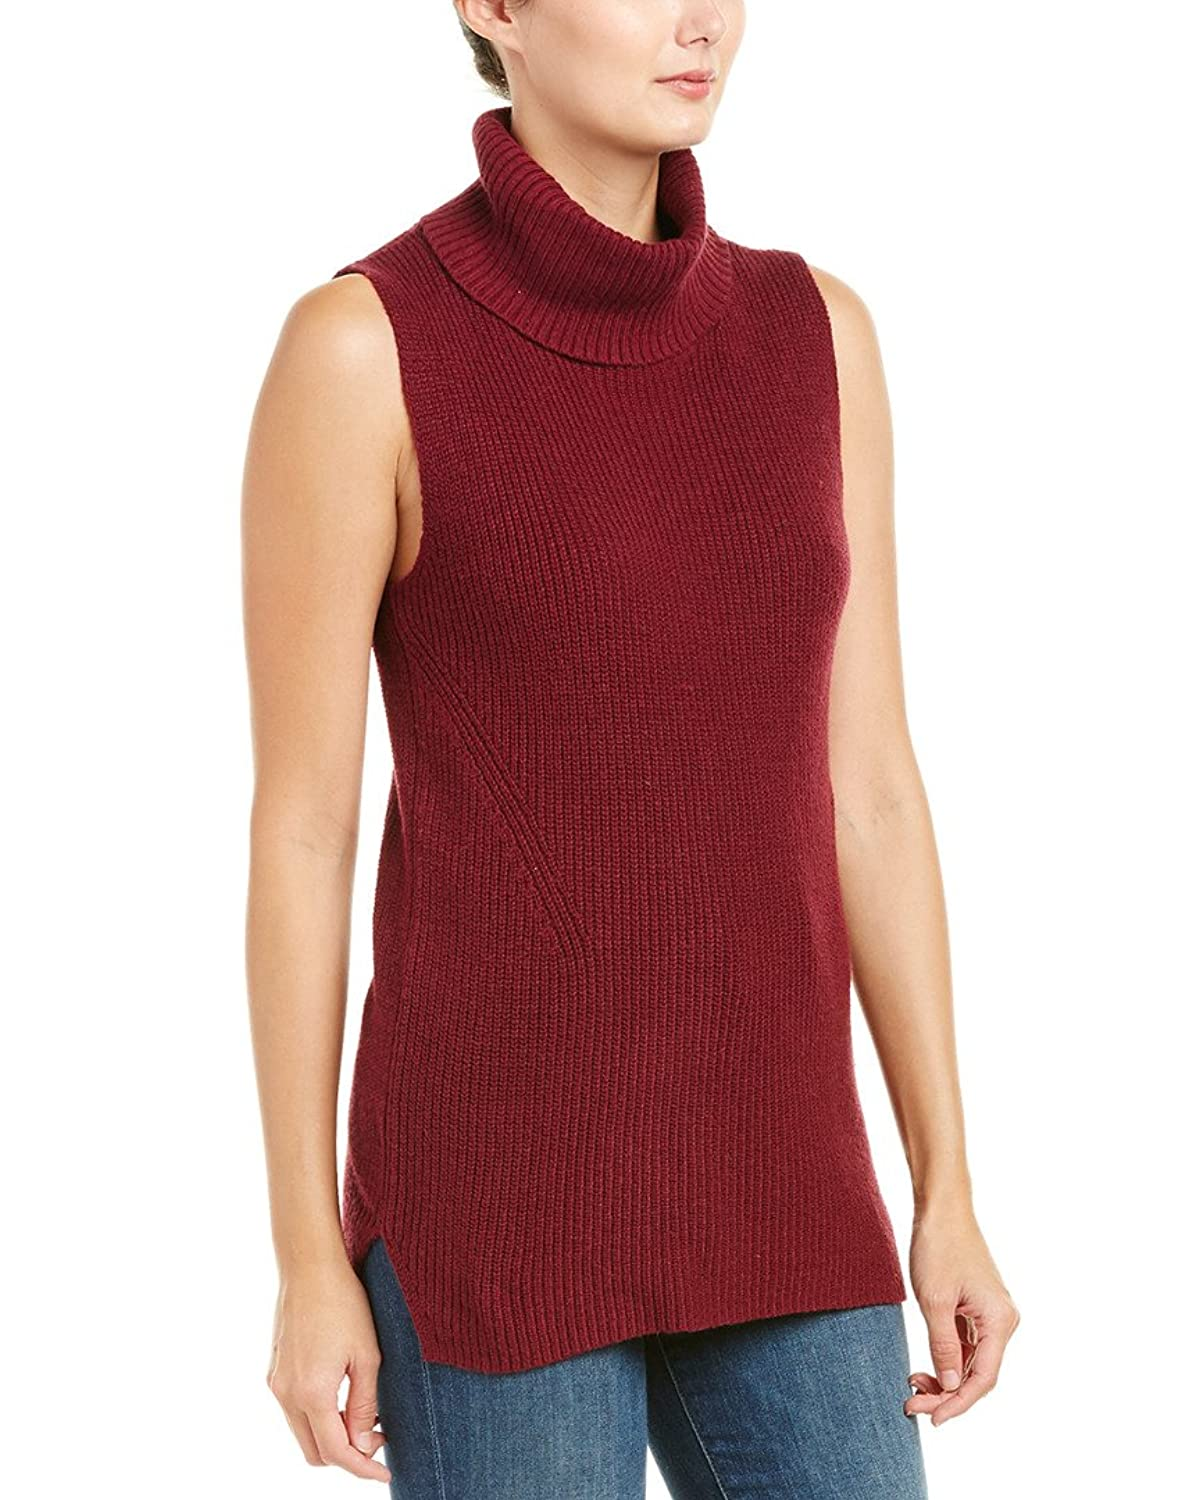 French Connection Womens Abel Sleeveless Cotton Blend Turtleneck Top Red S